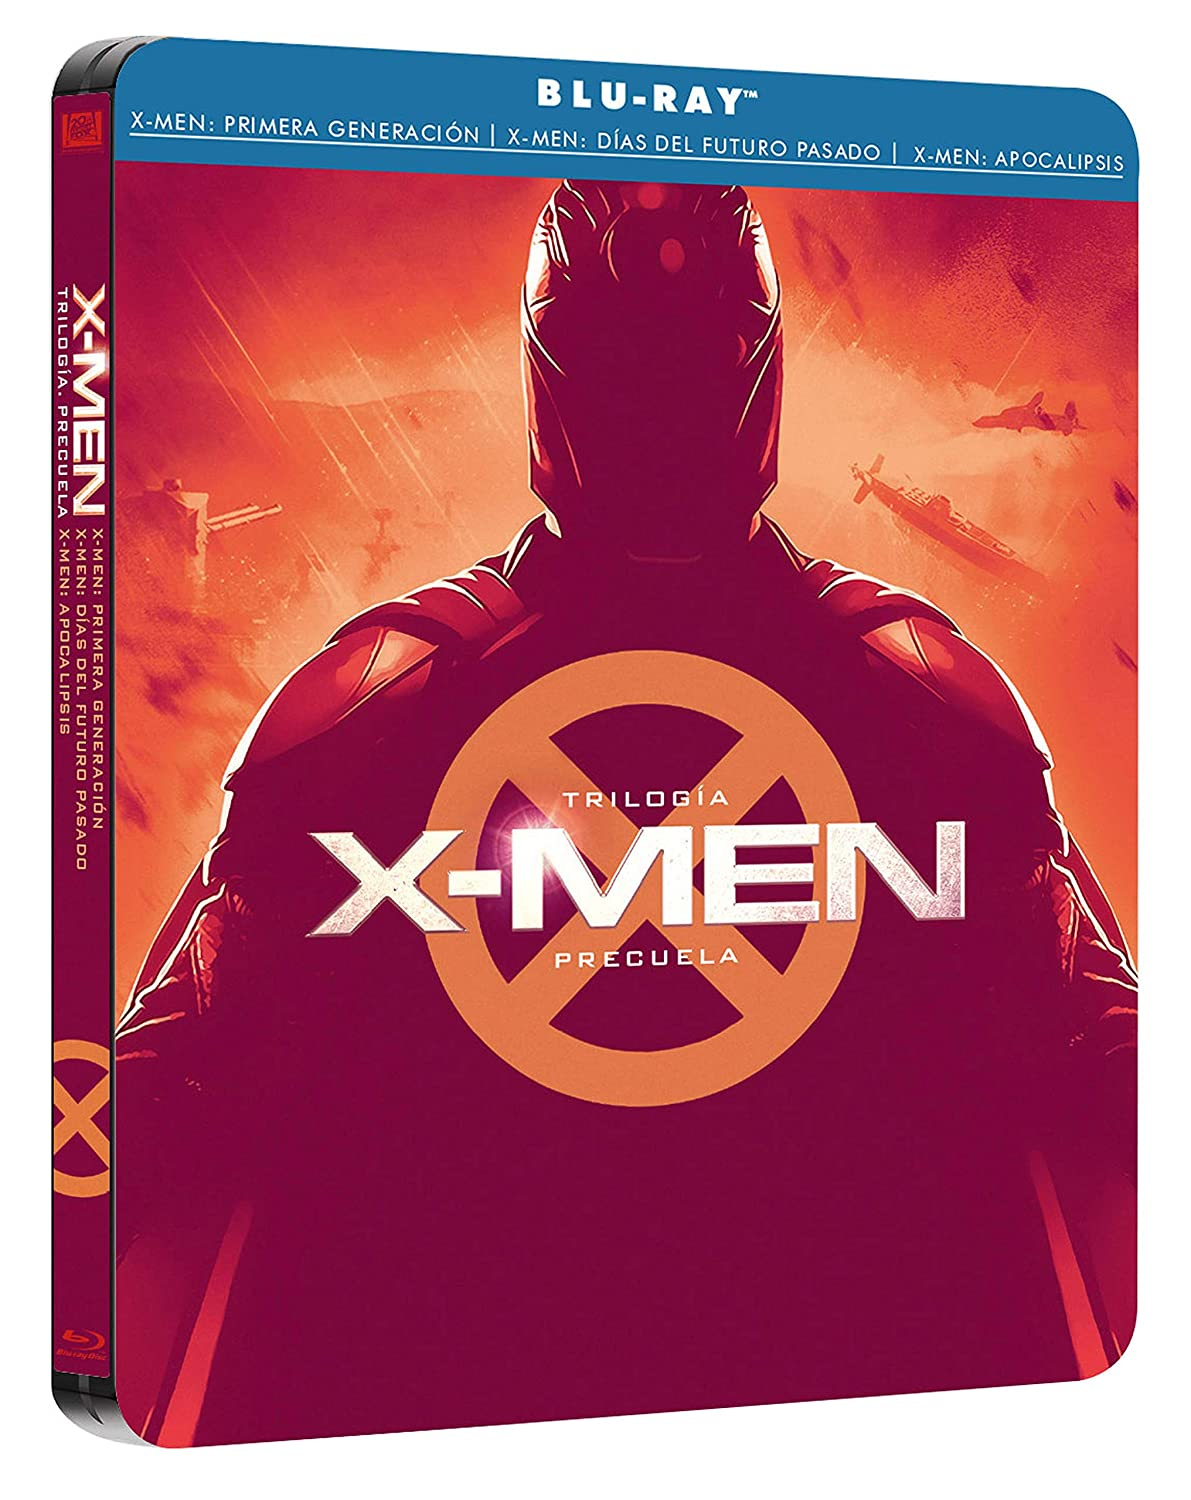 Pack X-Men Trilogía Precuela Black Mtl Ed Blu-Ray Blu-ray: Amazon ...